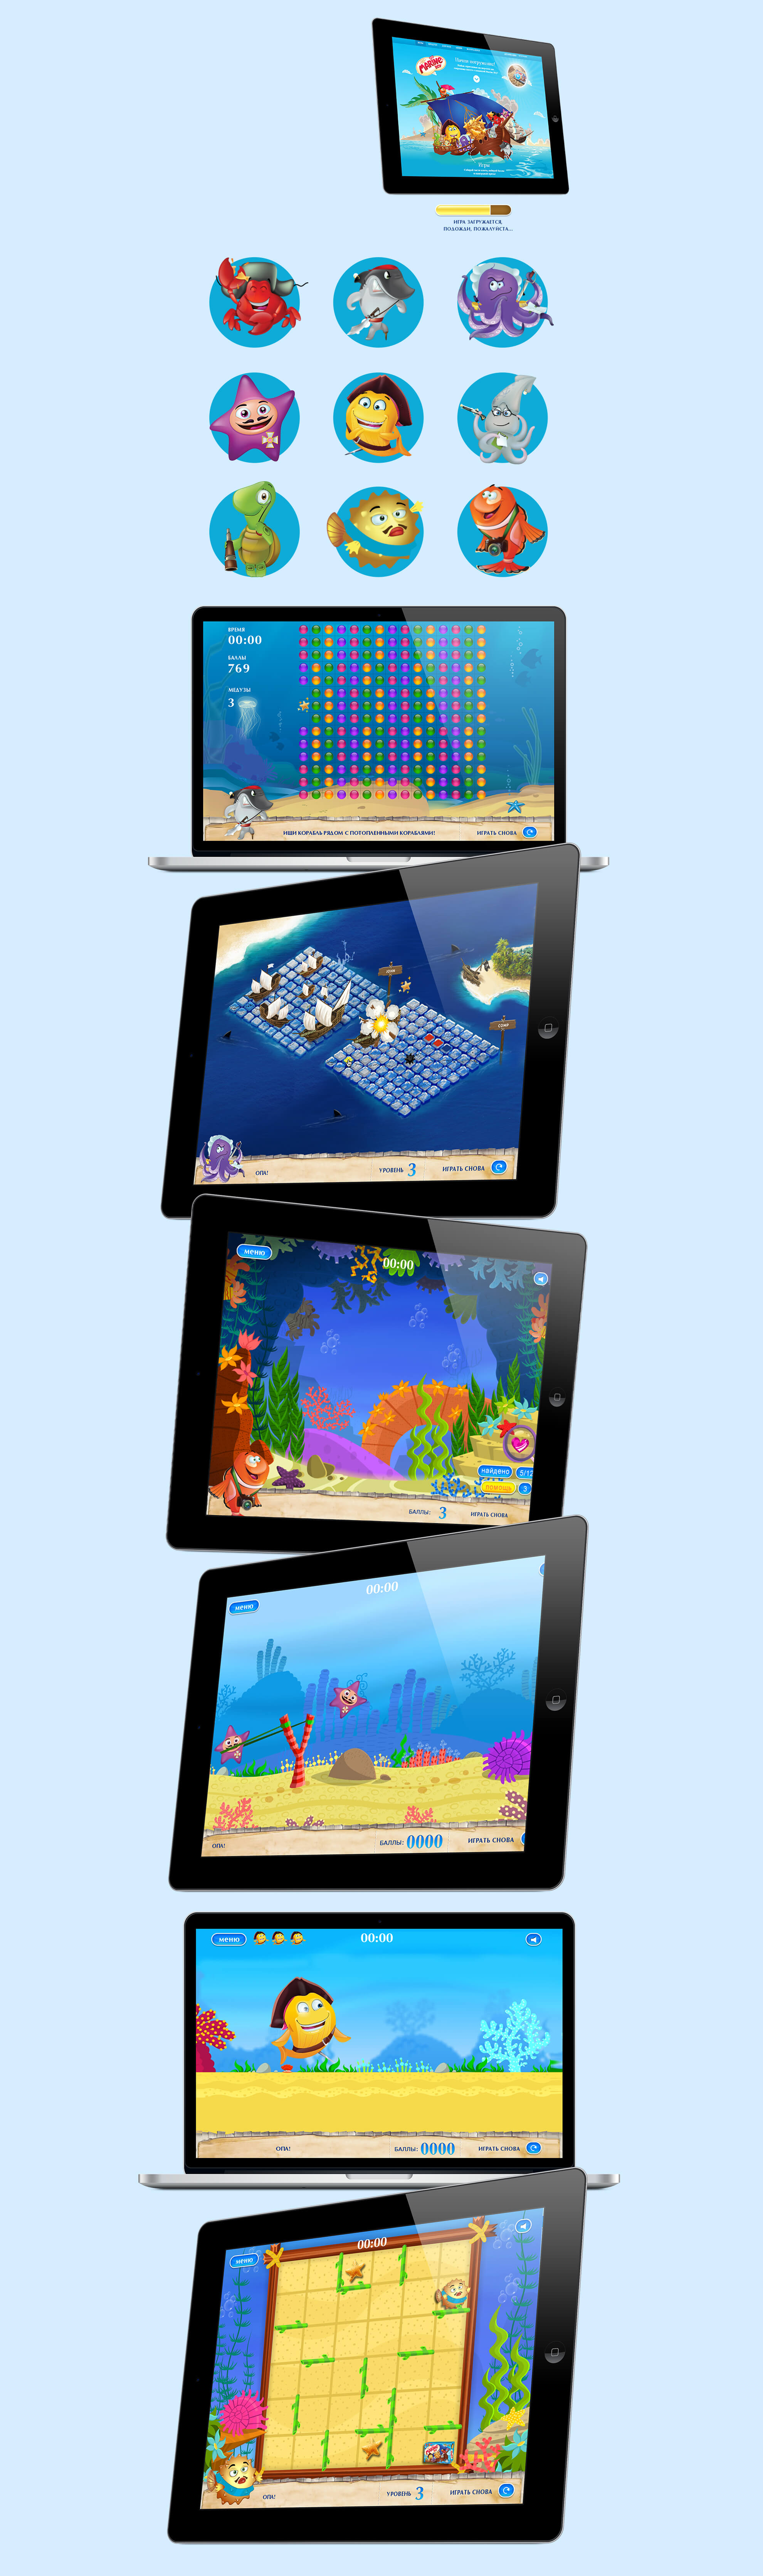 PROMO FLASH GAMES for MARINE BOY